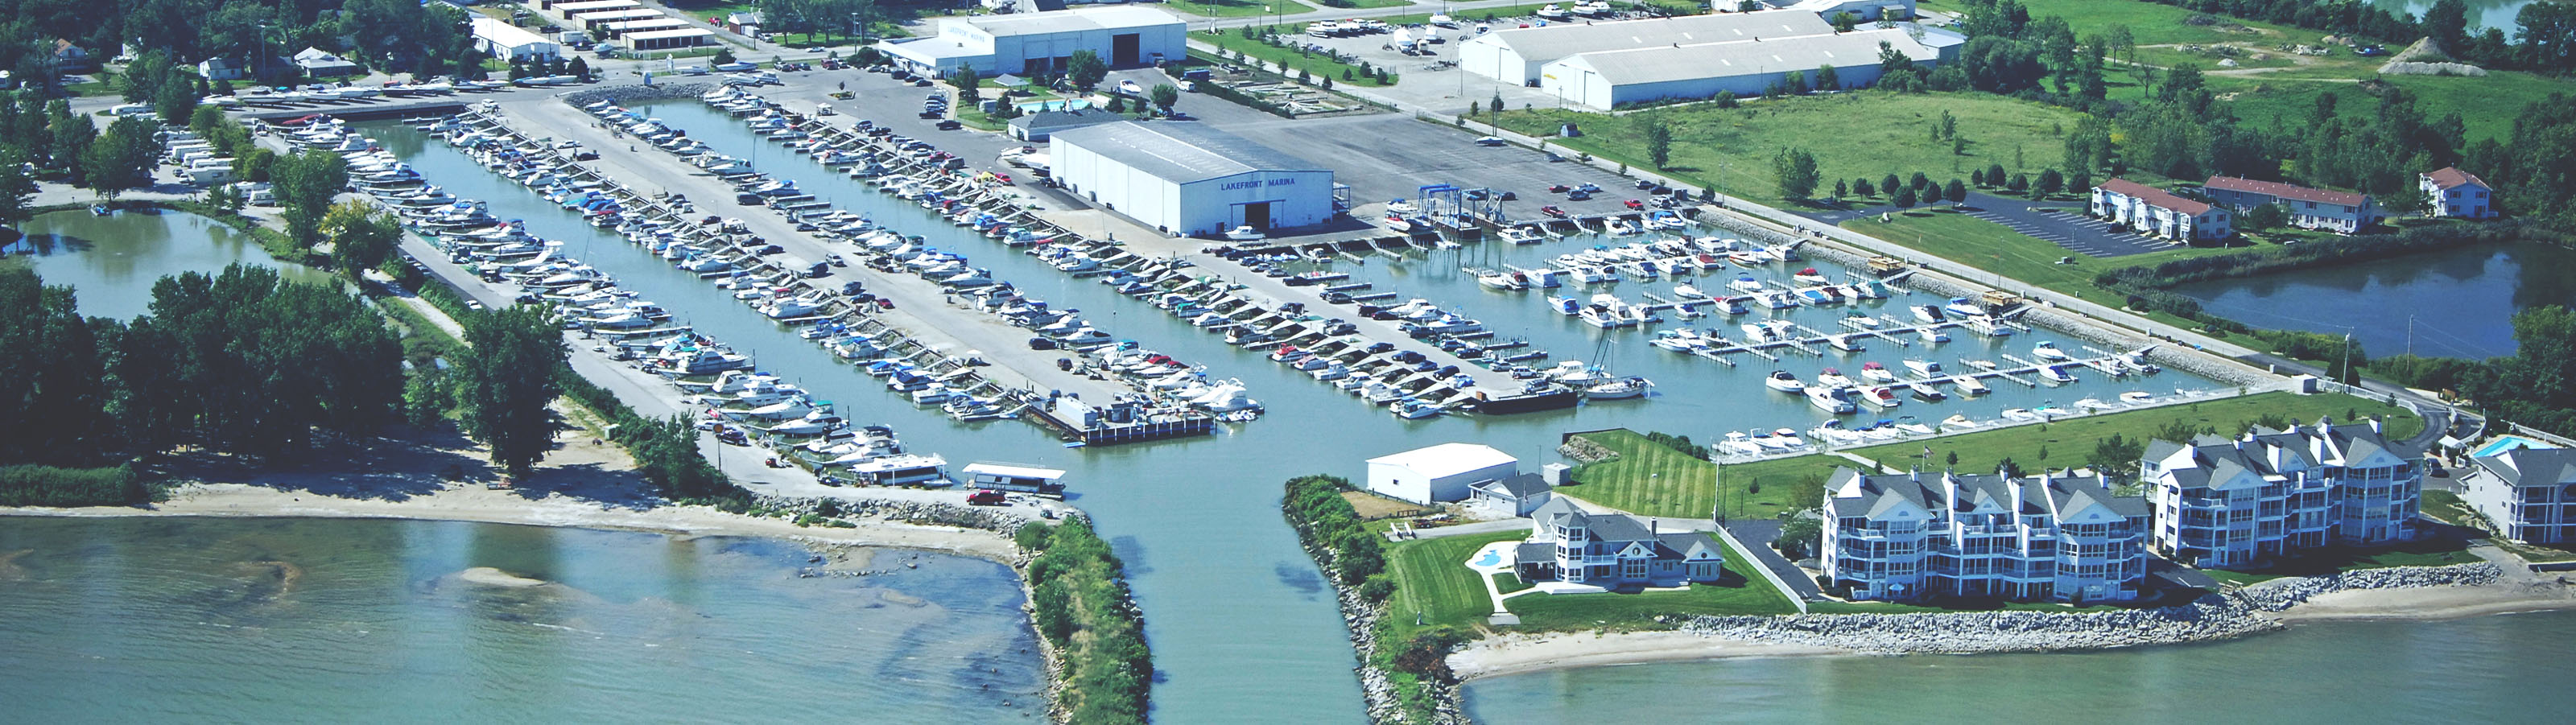 Lakefront Marina in Port Clinton, OH